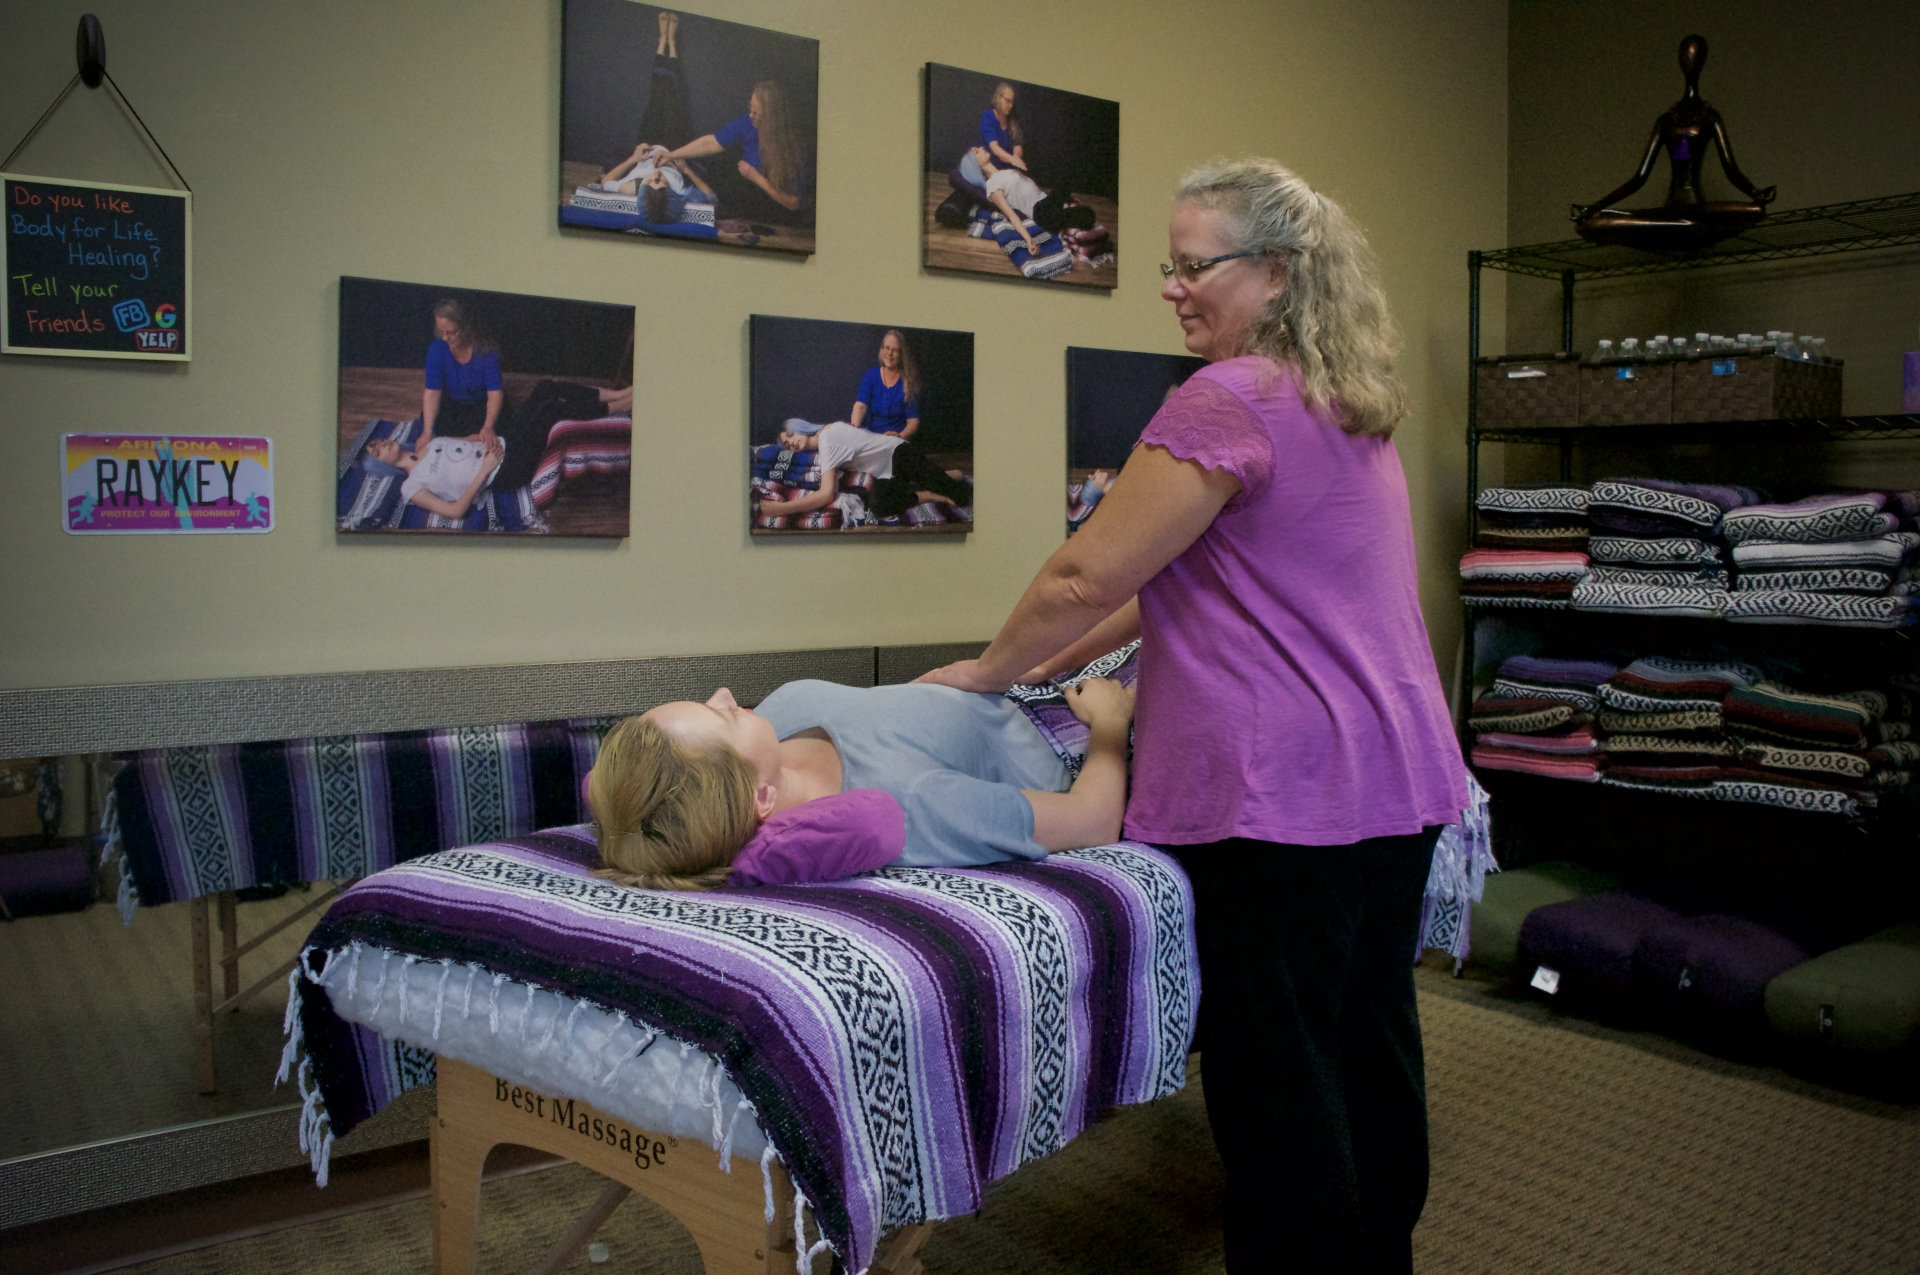 Canna Yamamoto giving Reiki energy healing in Tucson Arizona. Learn more at https://www.bodyforlifehealing.com/karuna-reiki-energy-healing-tucson-oro-valley